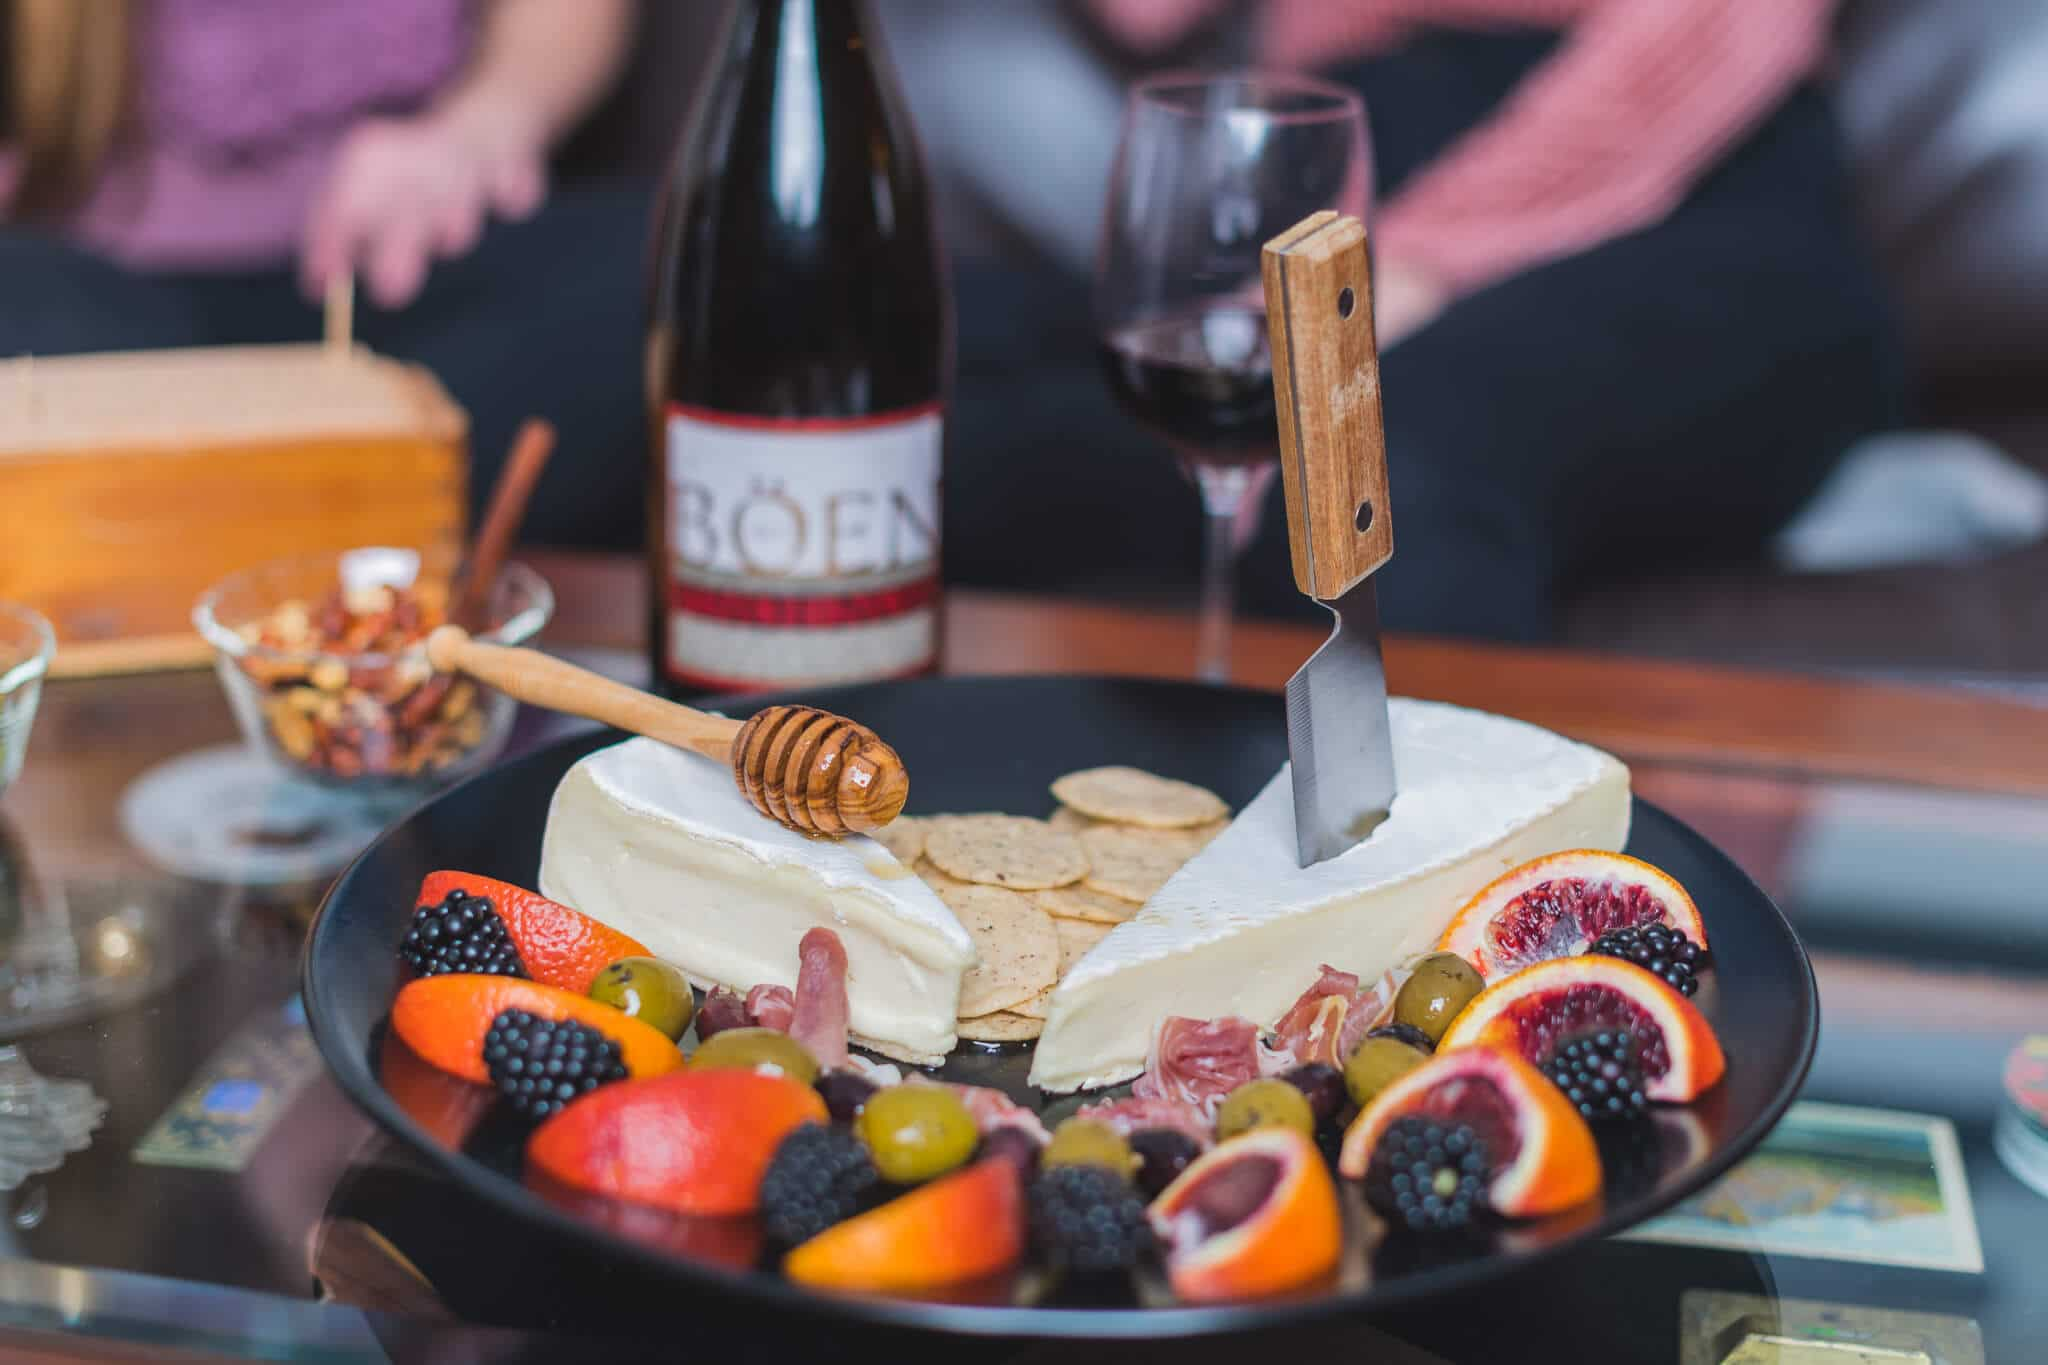 Californian Aperitivo with Böen Pinot Noir 8 The California Aperitivo takes all of the goodness of the traditional Northern Italian Aperitivo and adds localized farm to table fare. Perfect for small gatherings, a plate full of whatever is fresh and in season can be enjoyed before heading out for dinner.